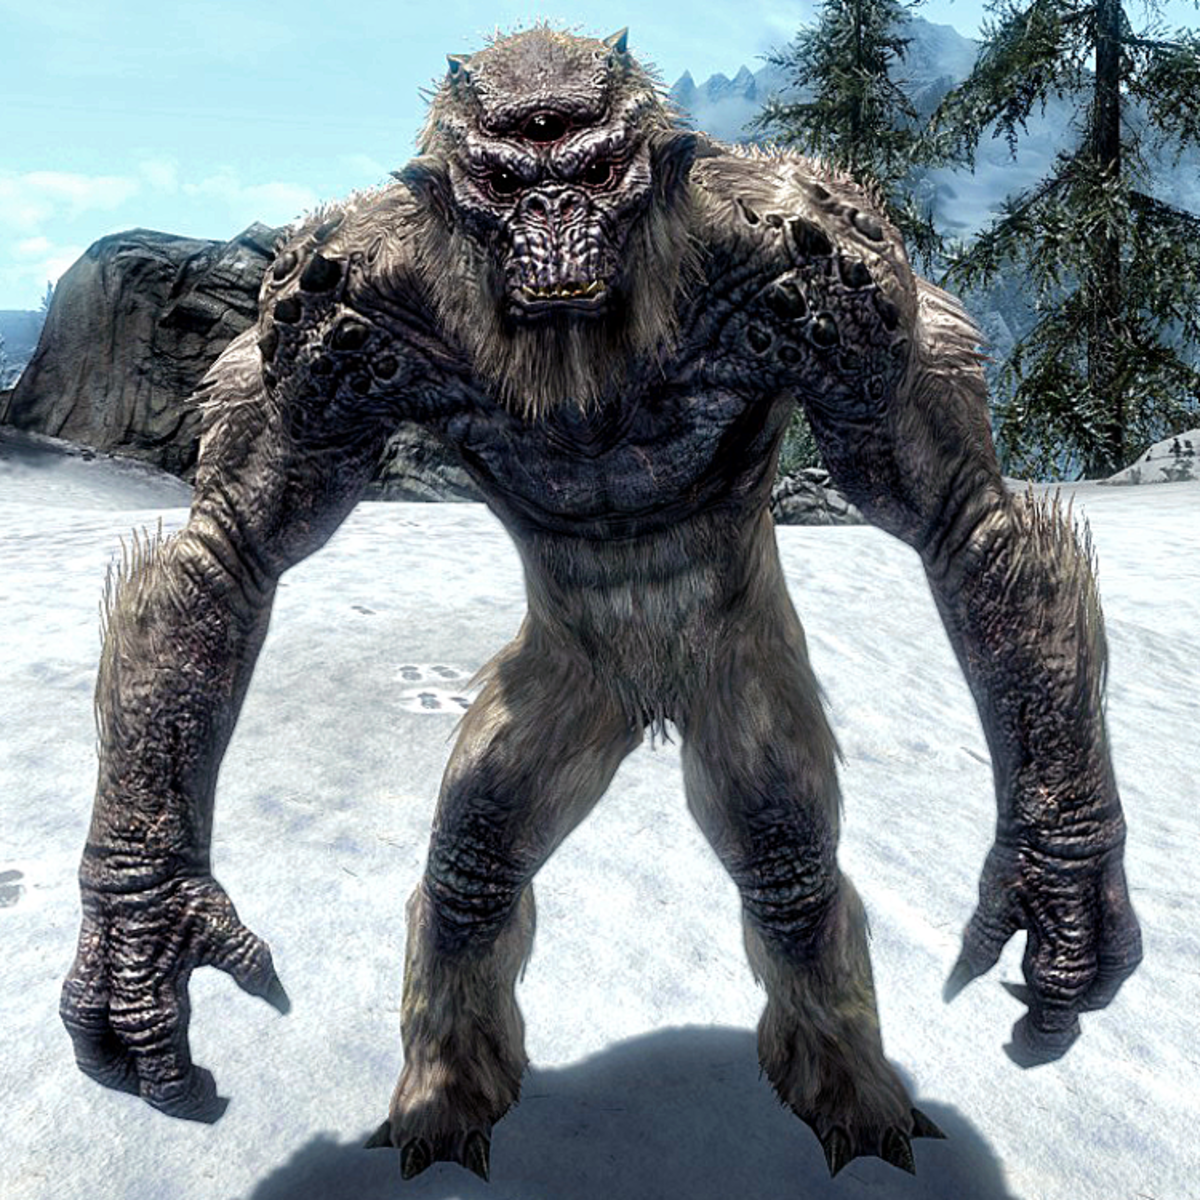 A frost troll, one of the randomly generated animals to battle in Skyrim